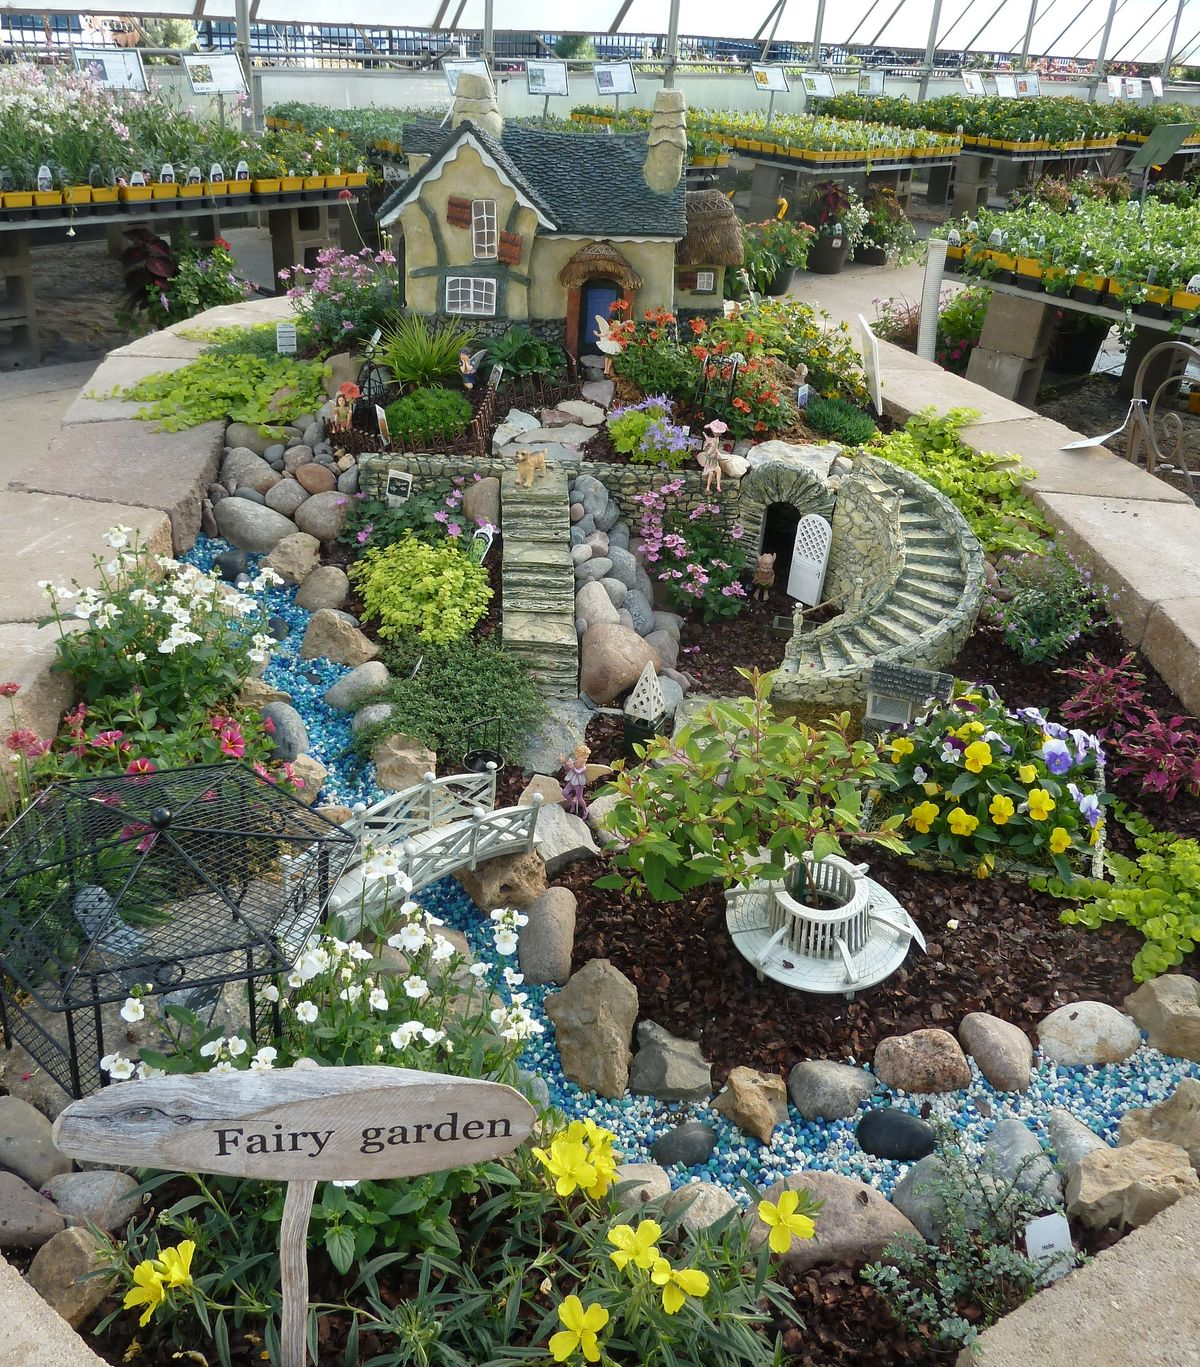 fairy garden plants and flowers